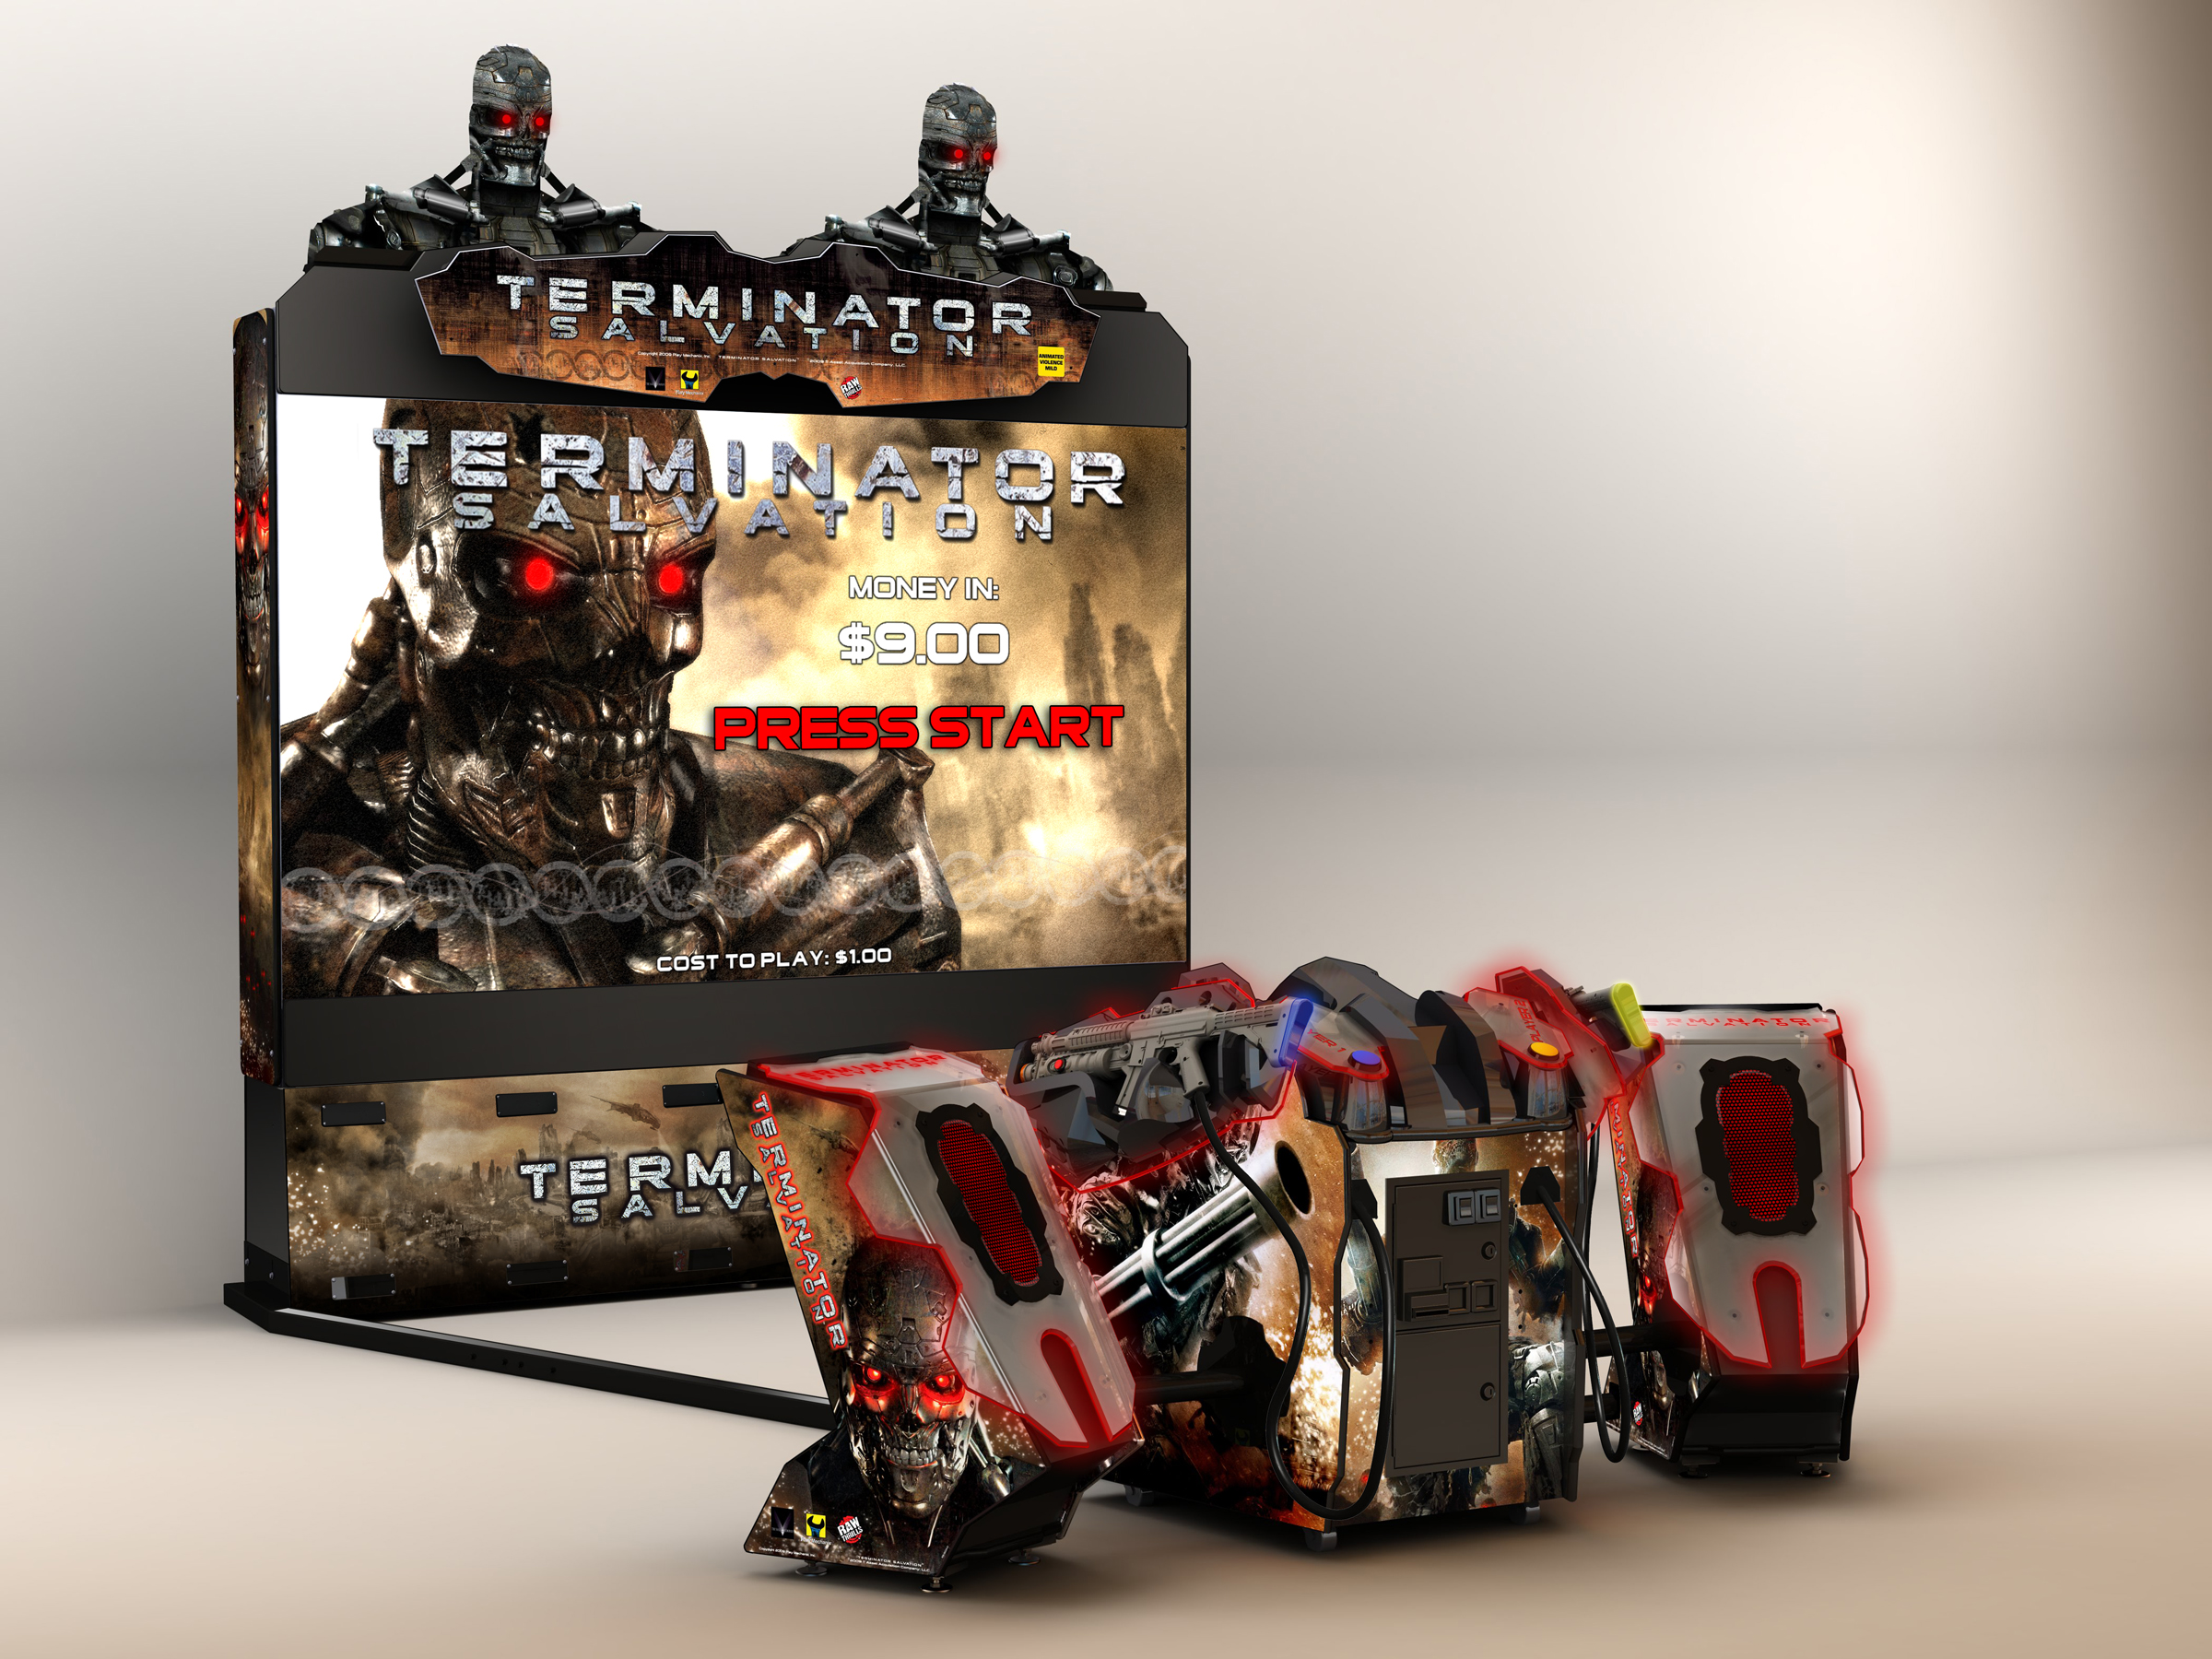 Terminator Salvation (arcade game)